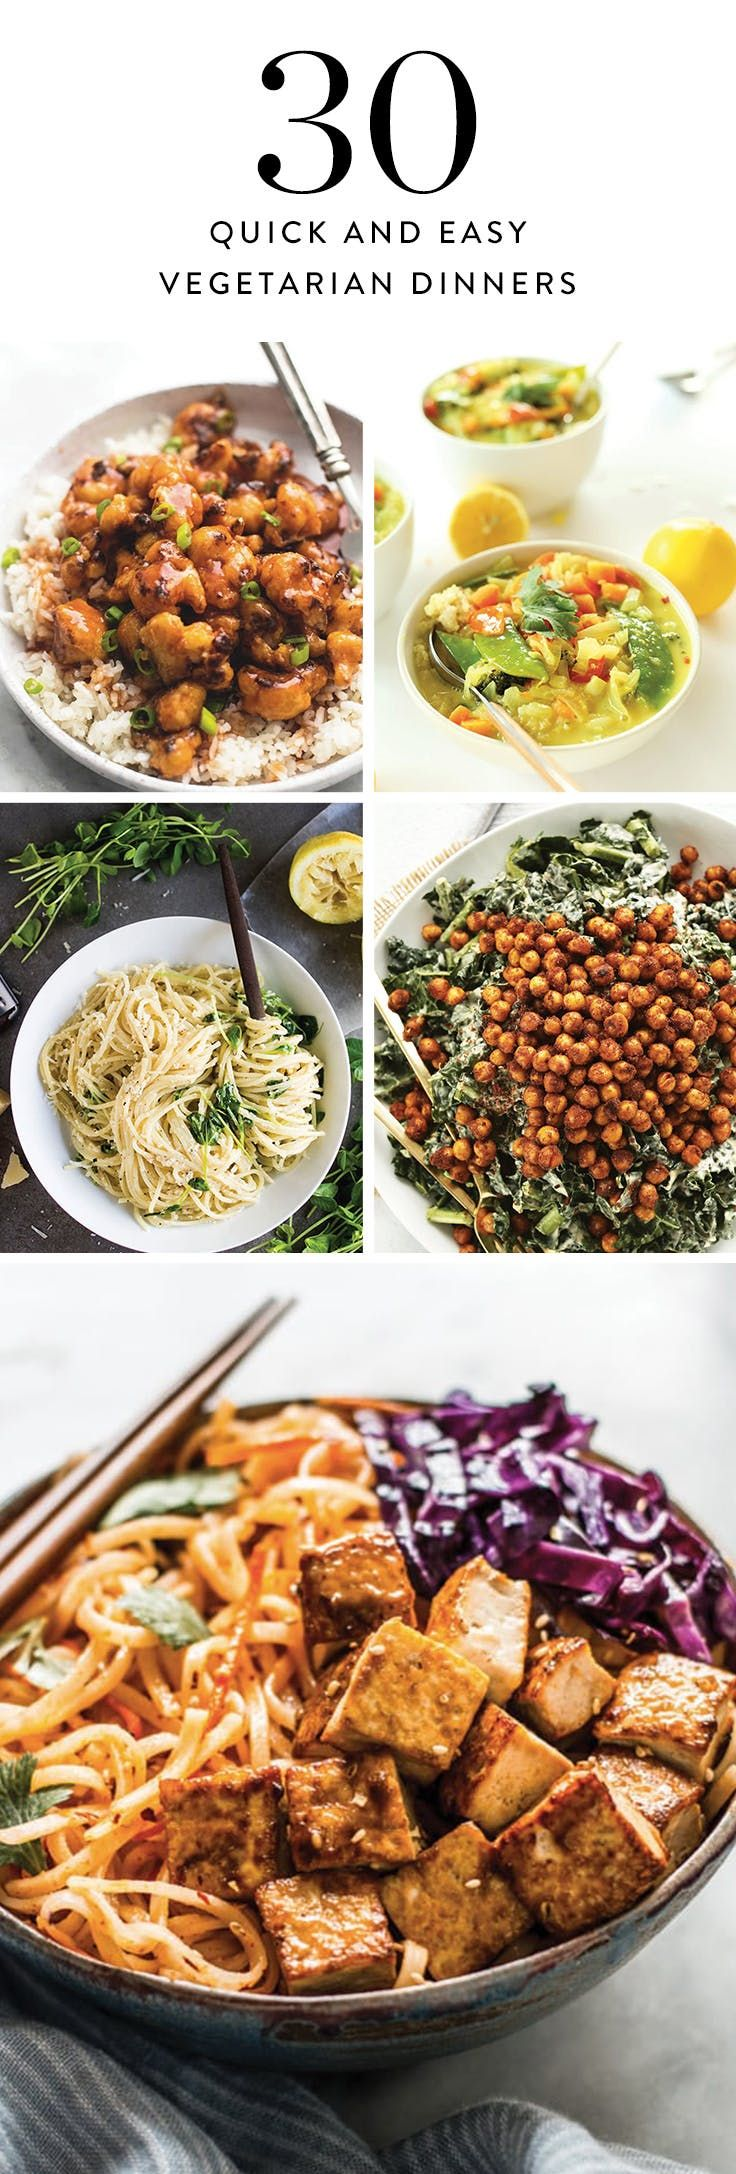 30 Lazy Vegetarian Dinners You Can Make in 30 Minutes or Less via @PureWow